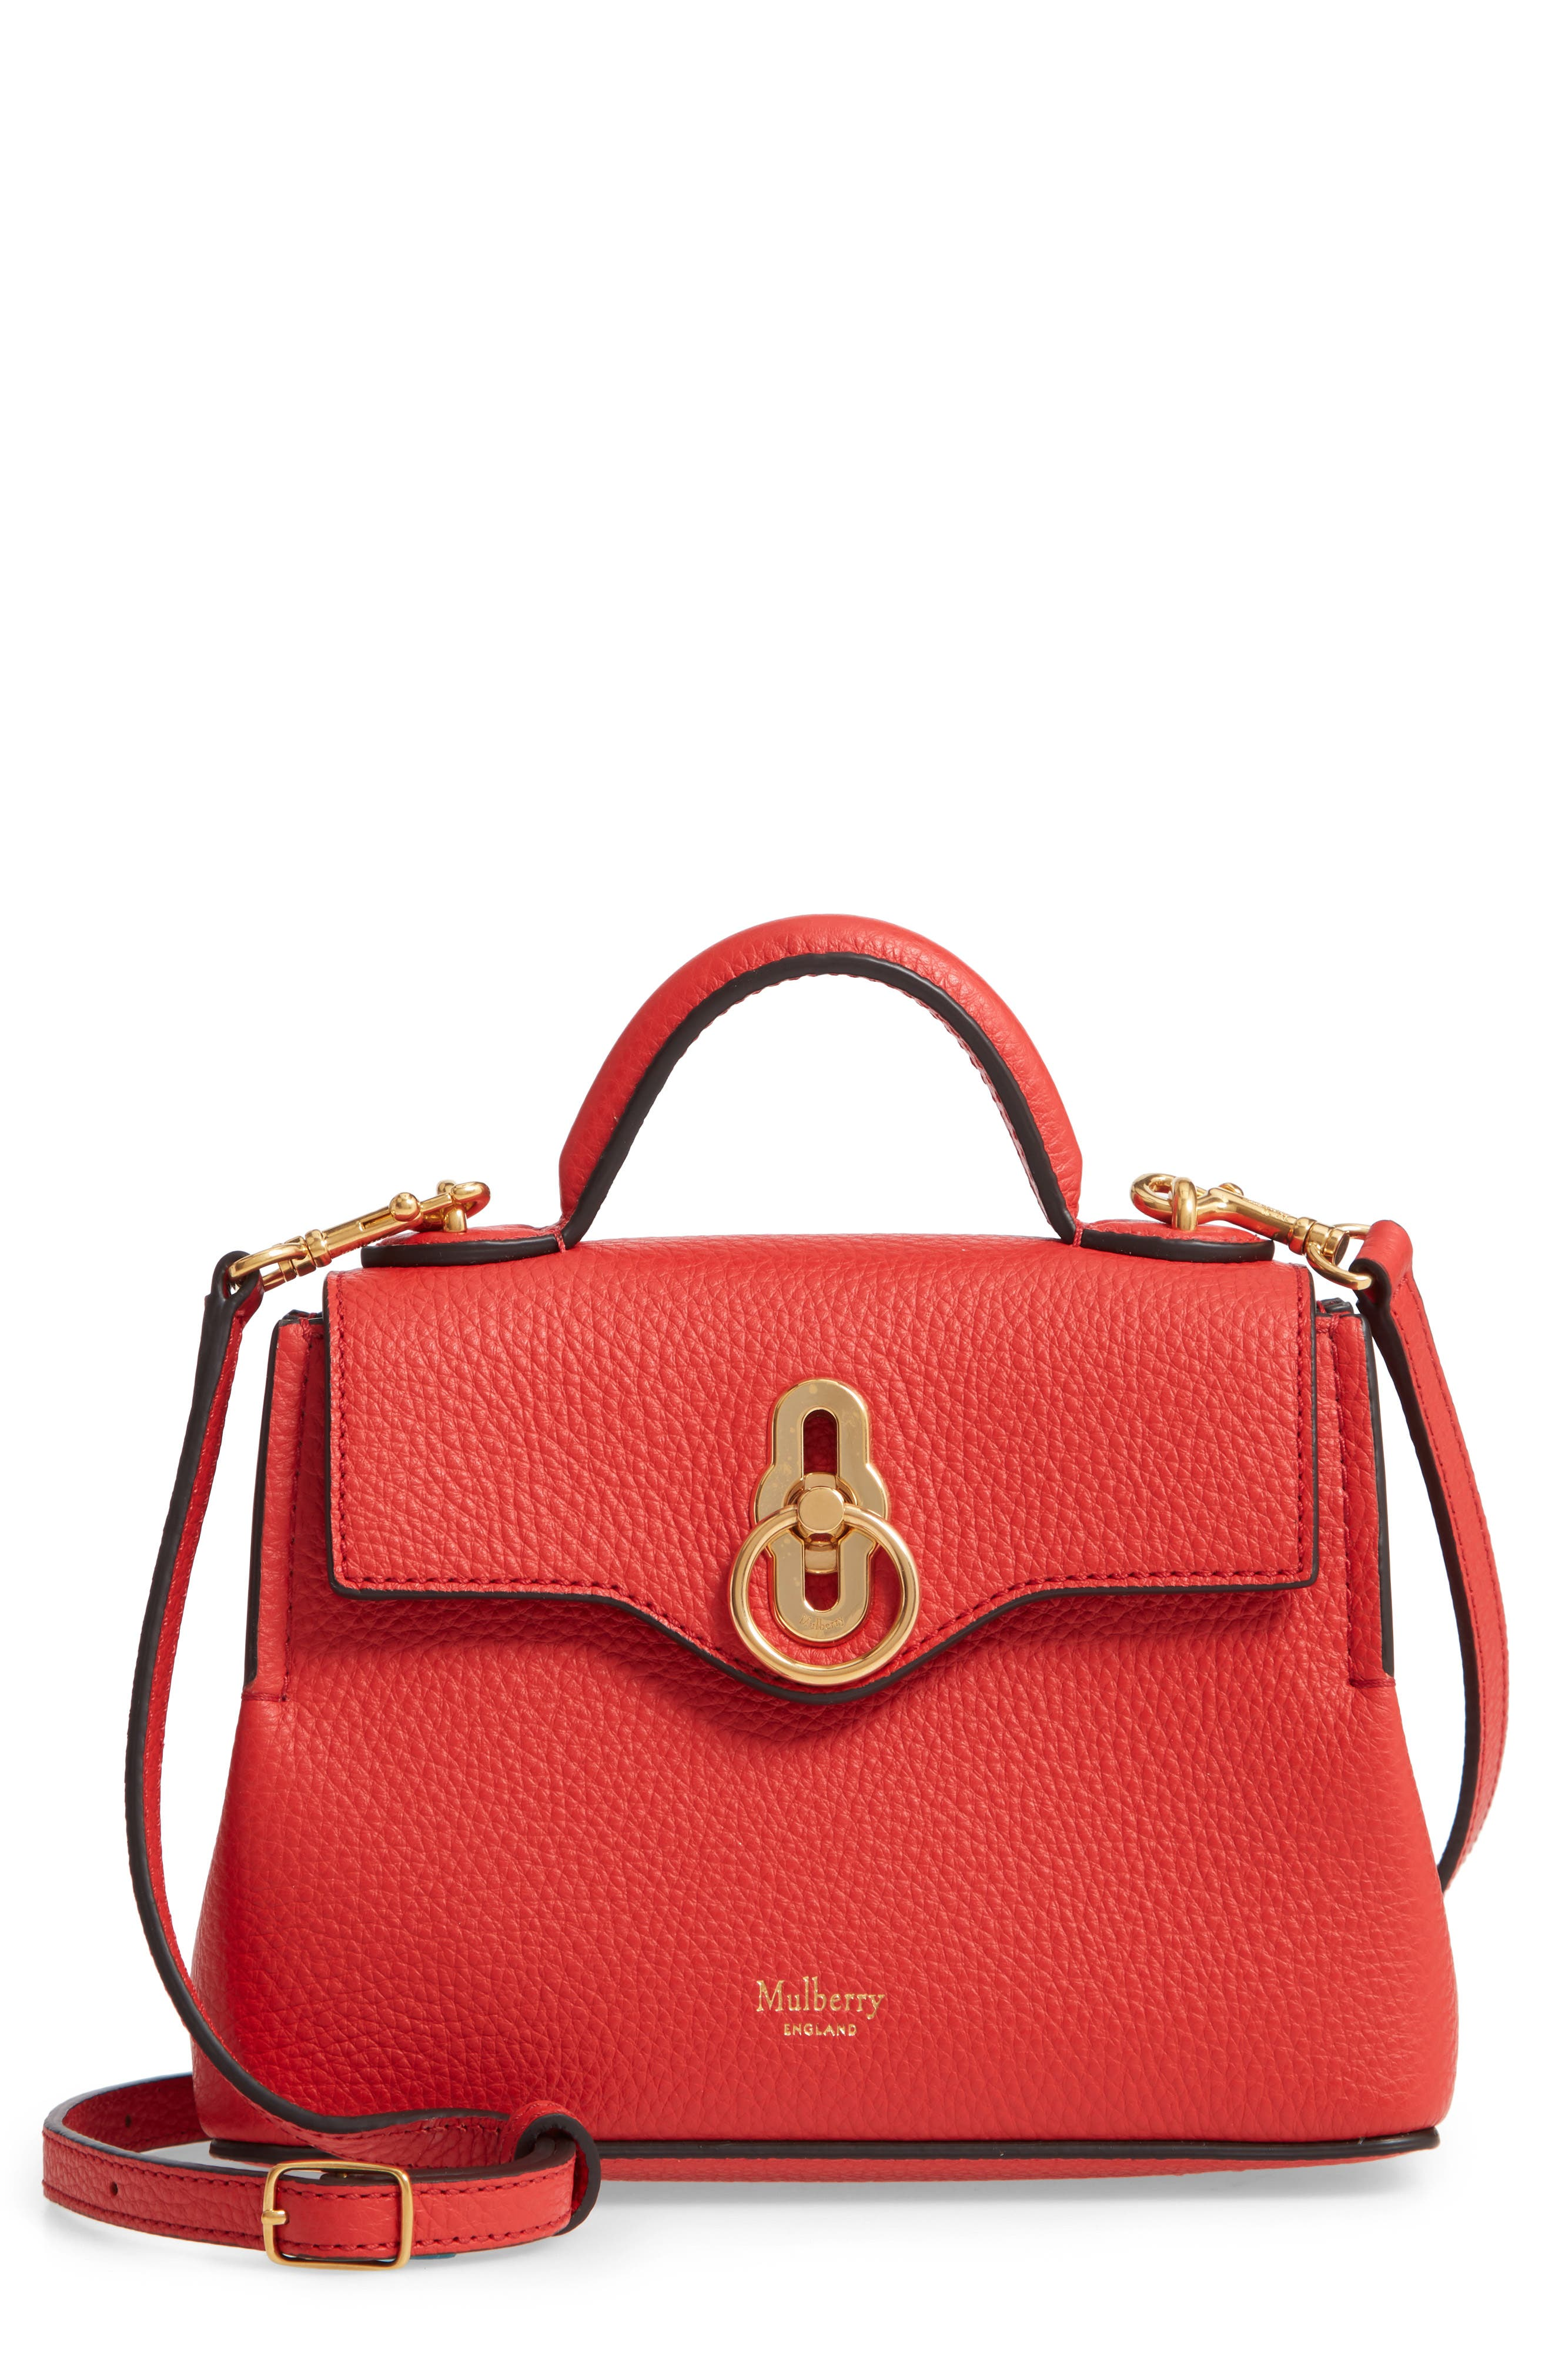 Mulberry All Women  6bb041506369f